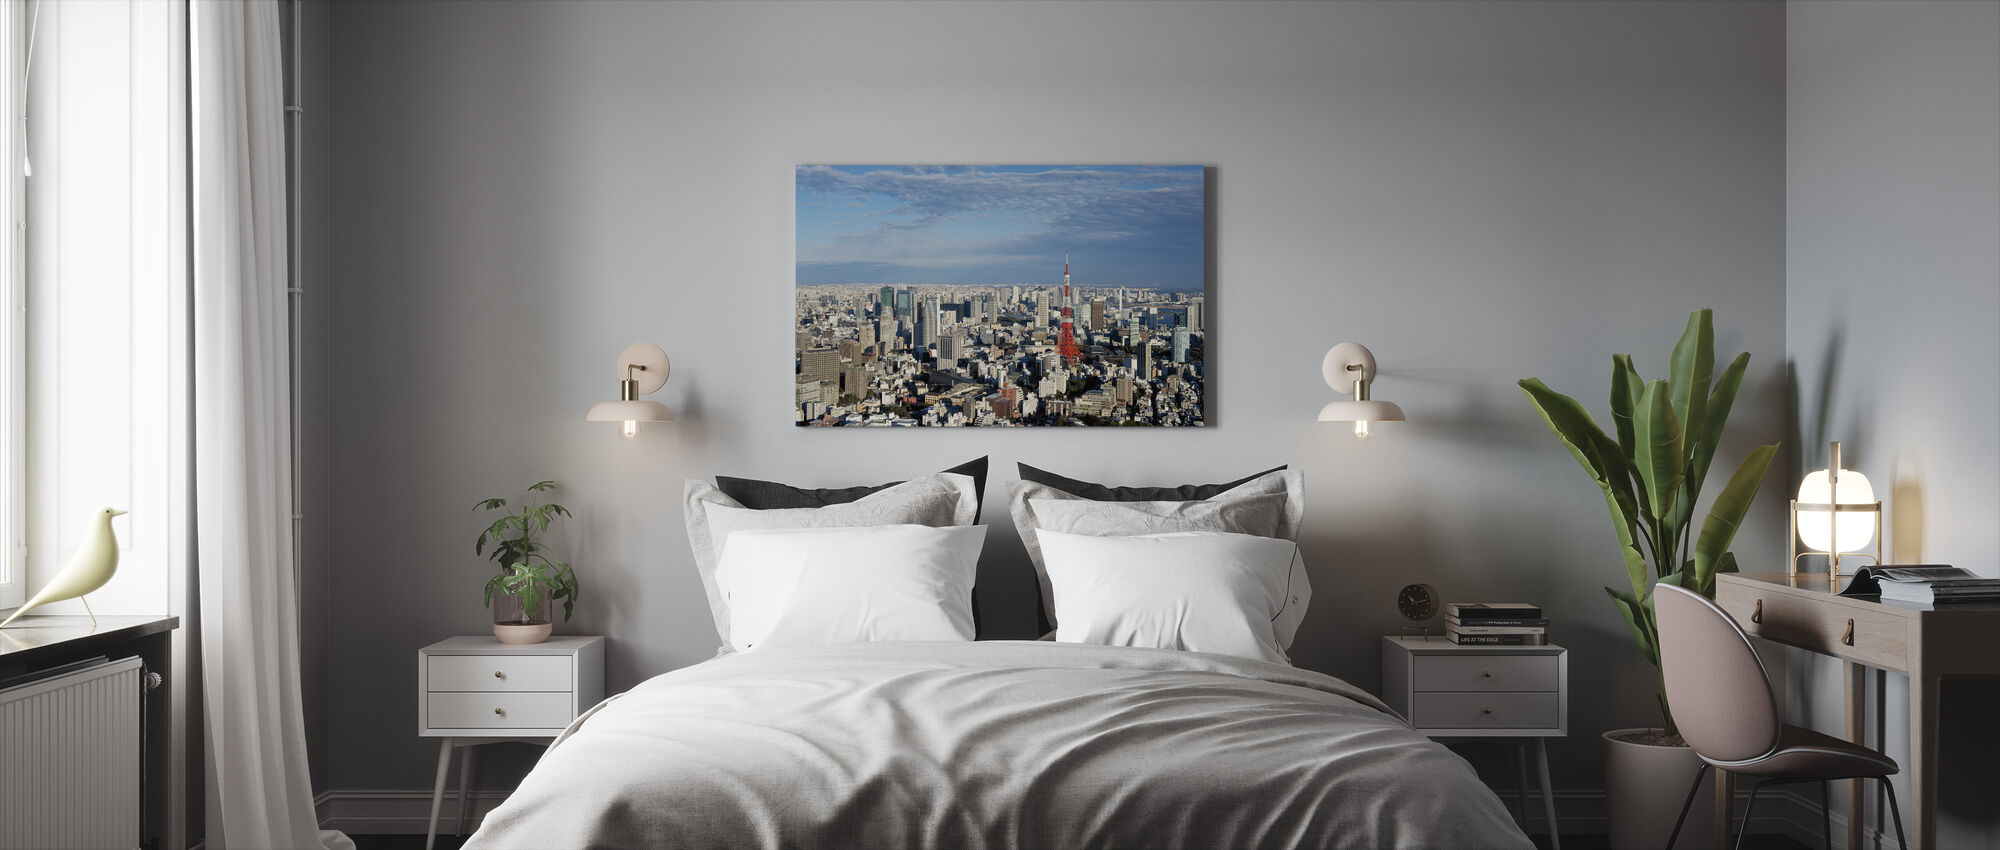 Tokyo View at Daylight - Canvas print - Bedroom